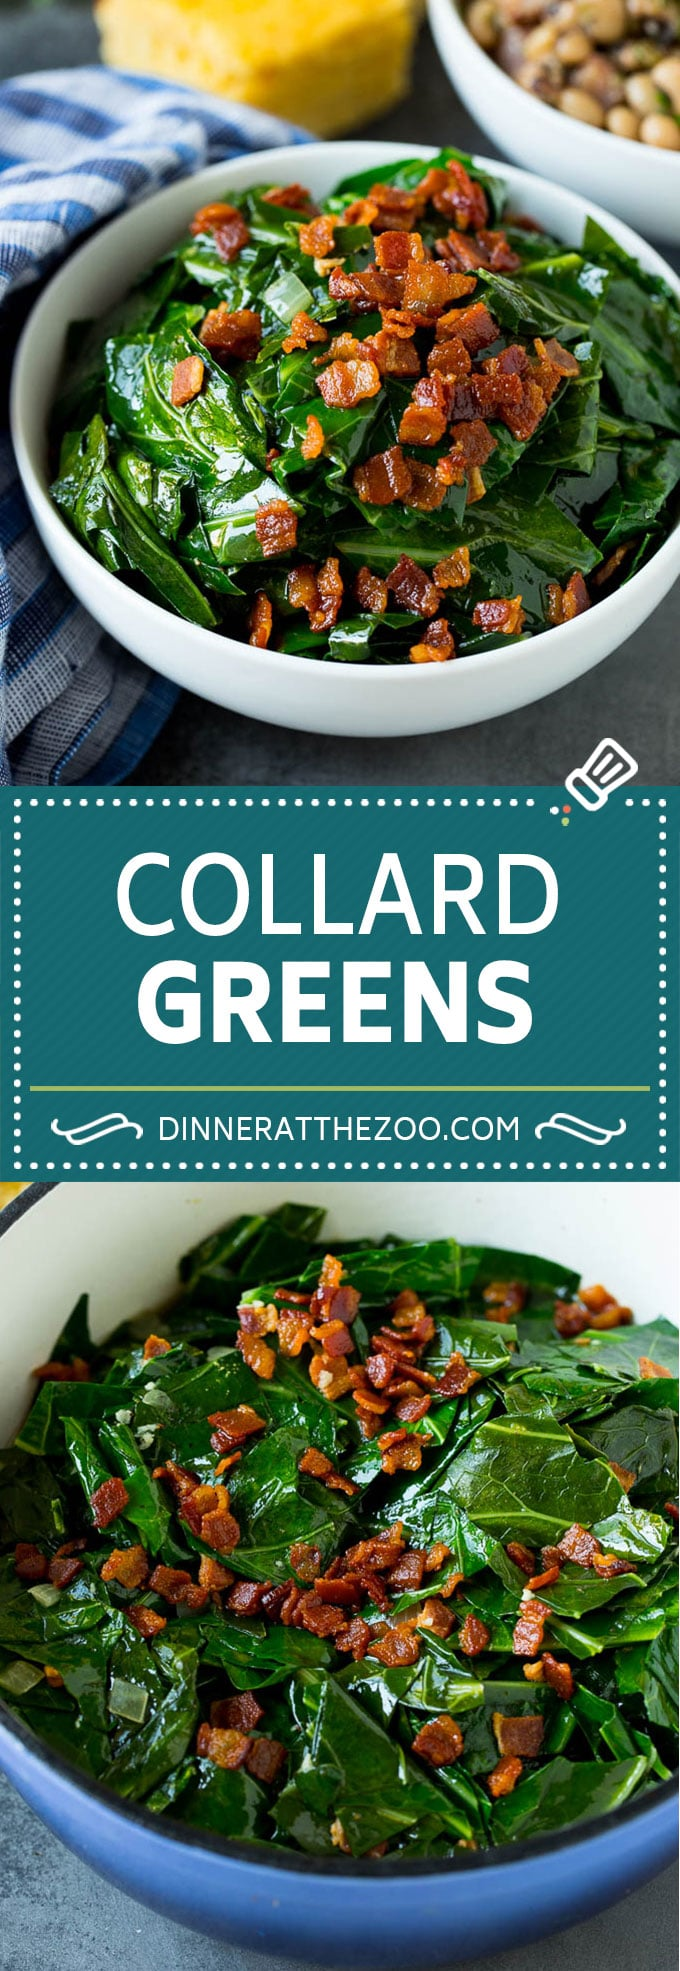 These Southern style collard greens are simmered with bacon and seasonings until tender and flavorful.